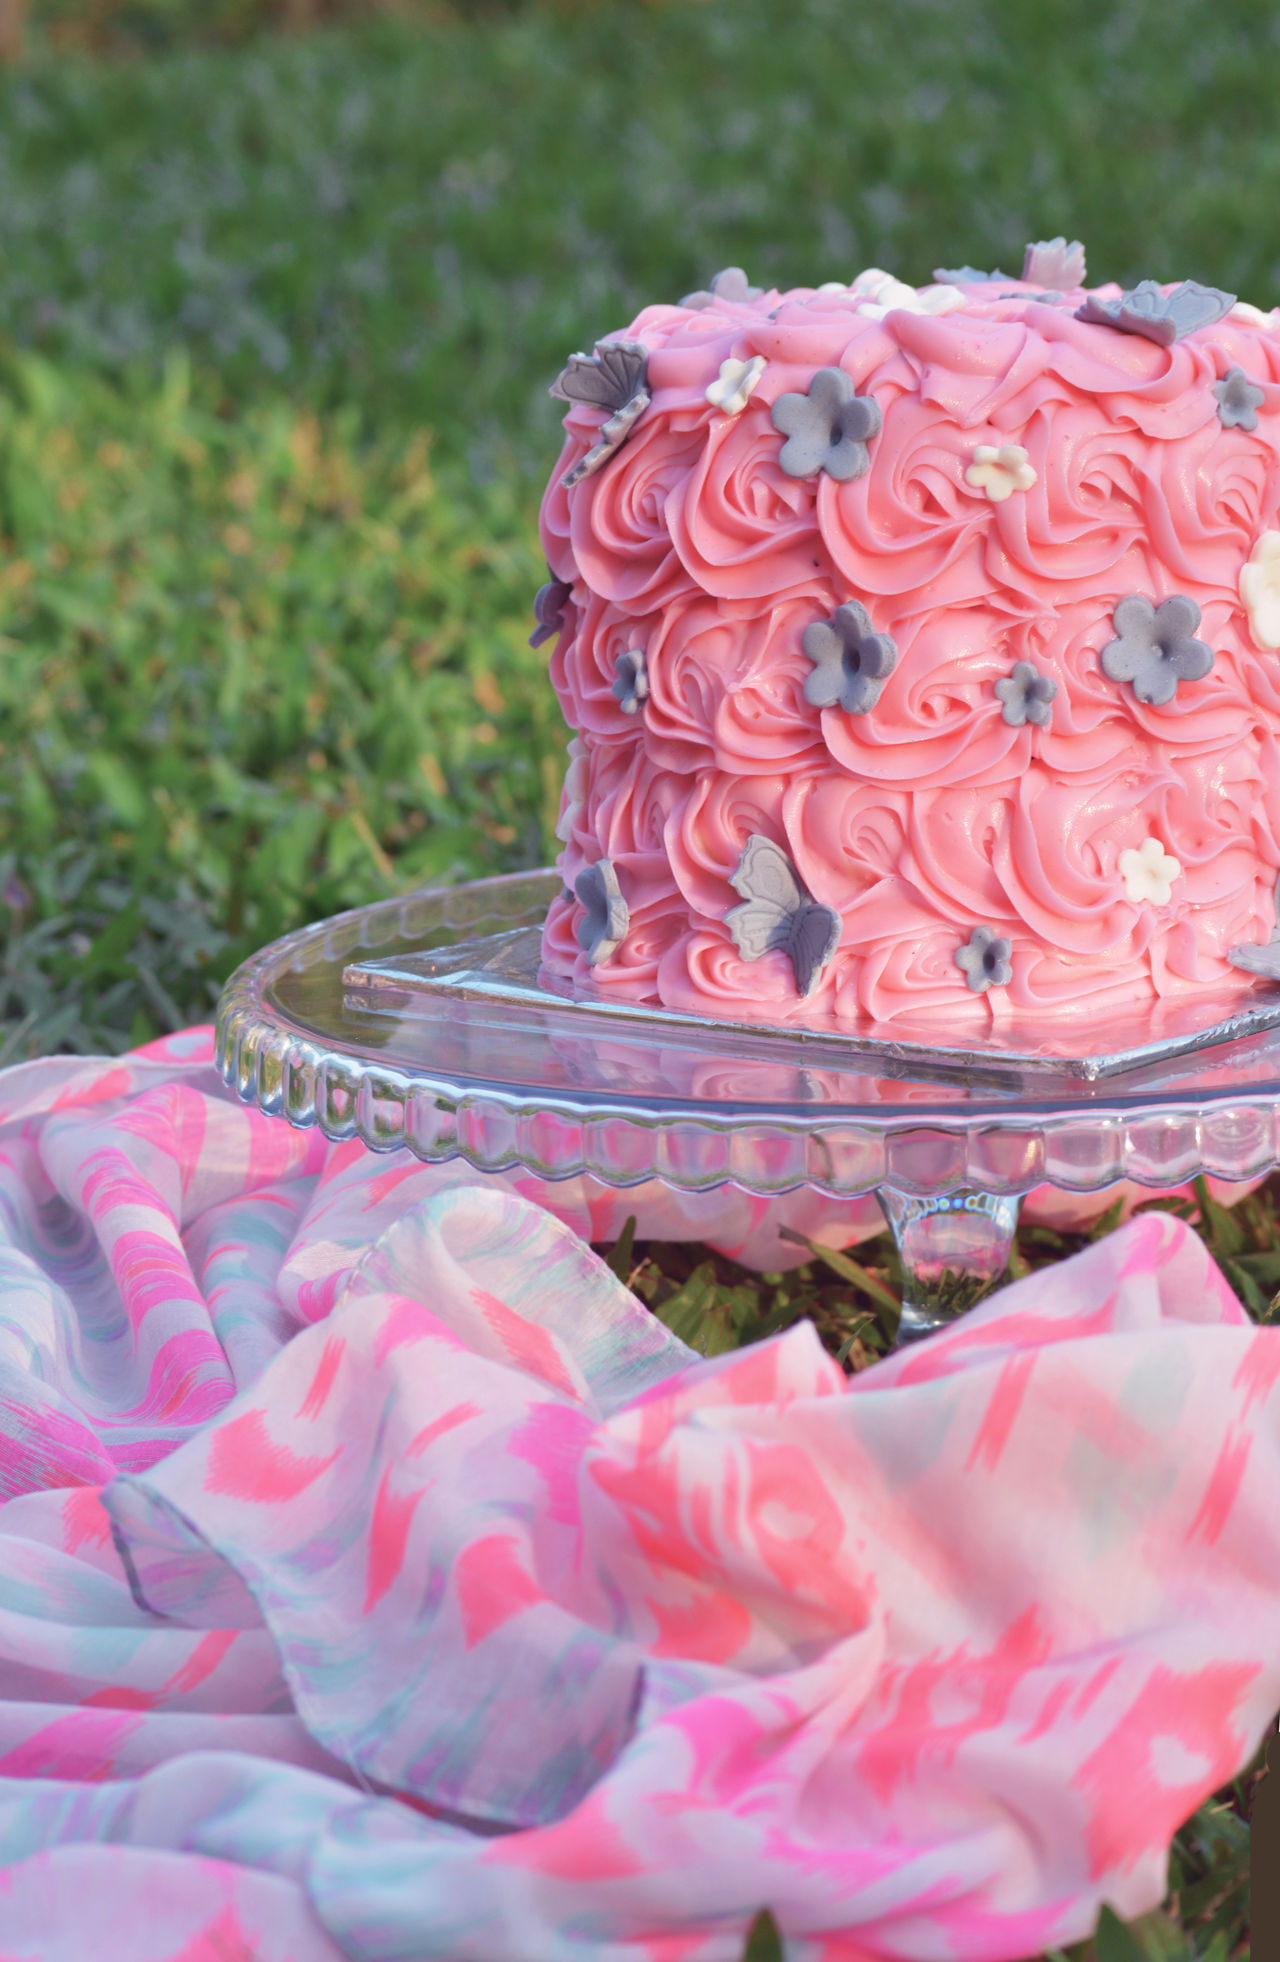 Baby Girl Cake Cake For Shoot Celebration Close-up Day Decorative Cakes Delicious EyeEmNewHere Flower Food Freshness Garden Innocent Naive No People Outdoors Picnic Pink Pink Color Ready-to-eat The Week On Eyem Welcomeweekly